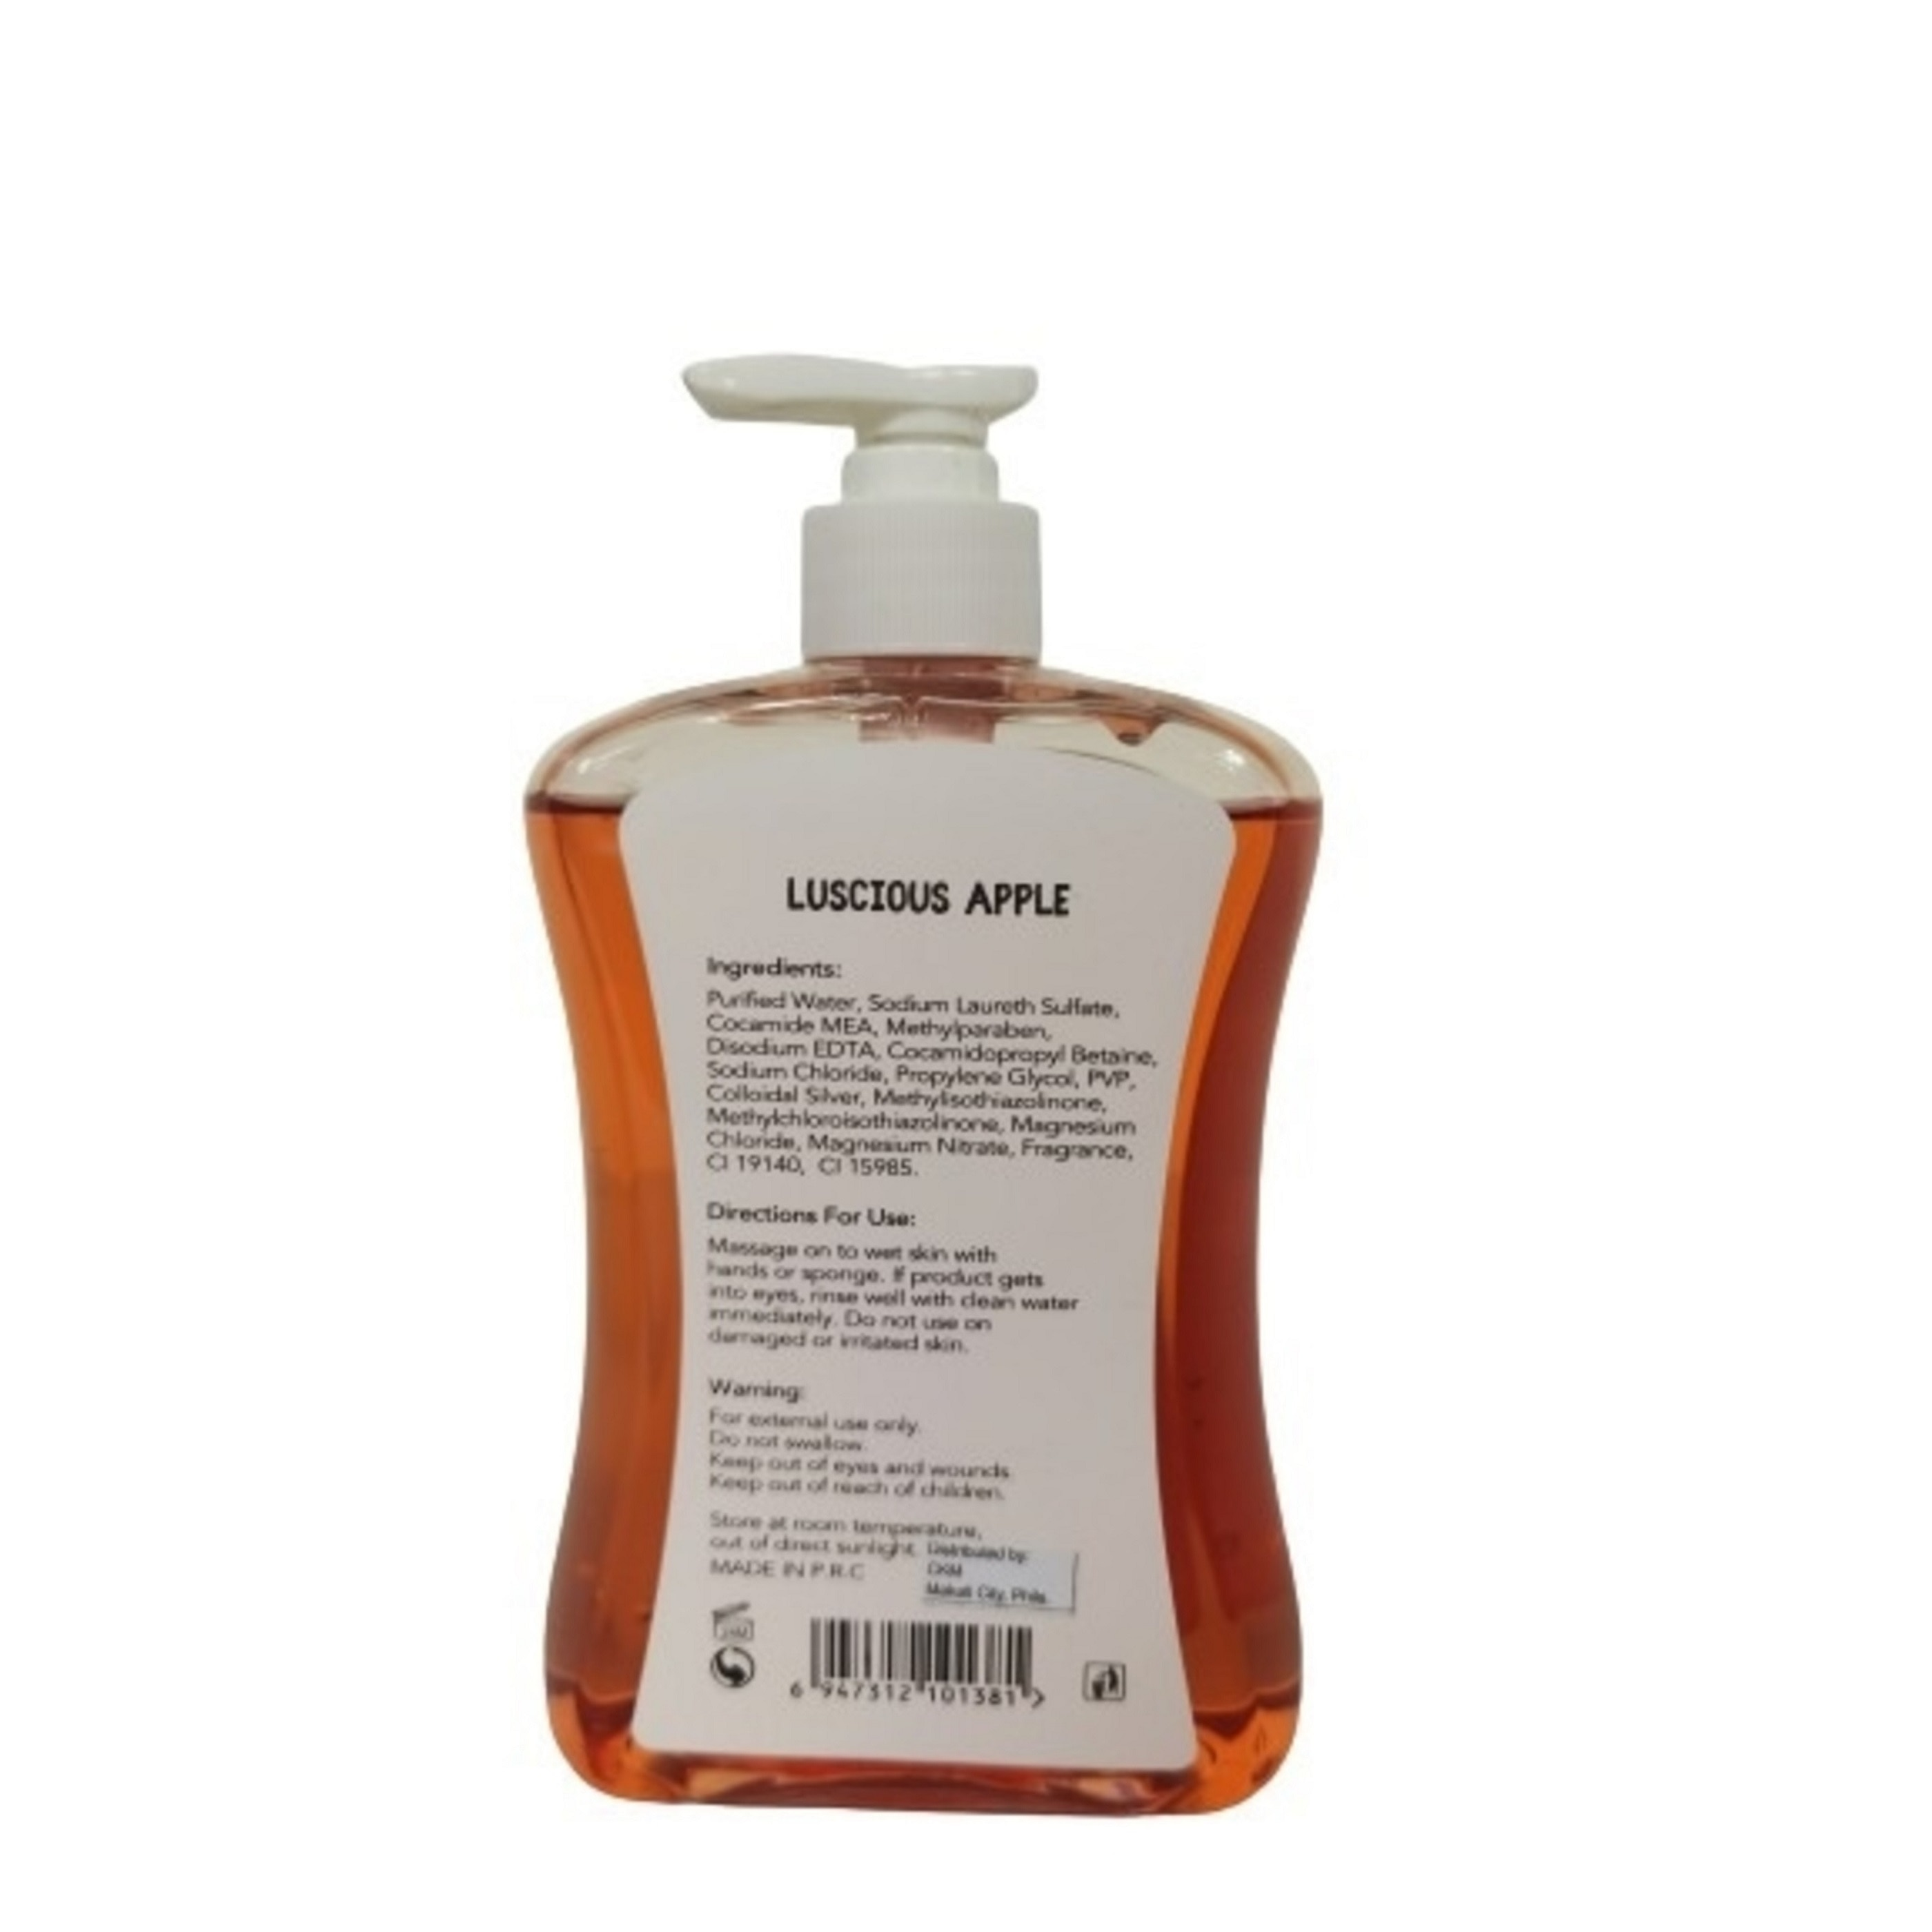 CLEAN RAntibacterial Hand Wash Luscious Apple 500ml,Hand Soap/SanitizersWhat A Splash: All Products